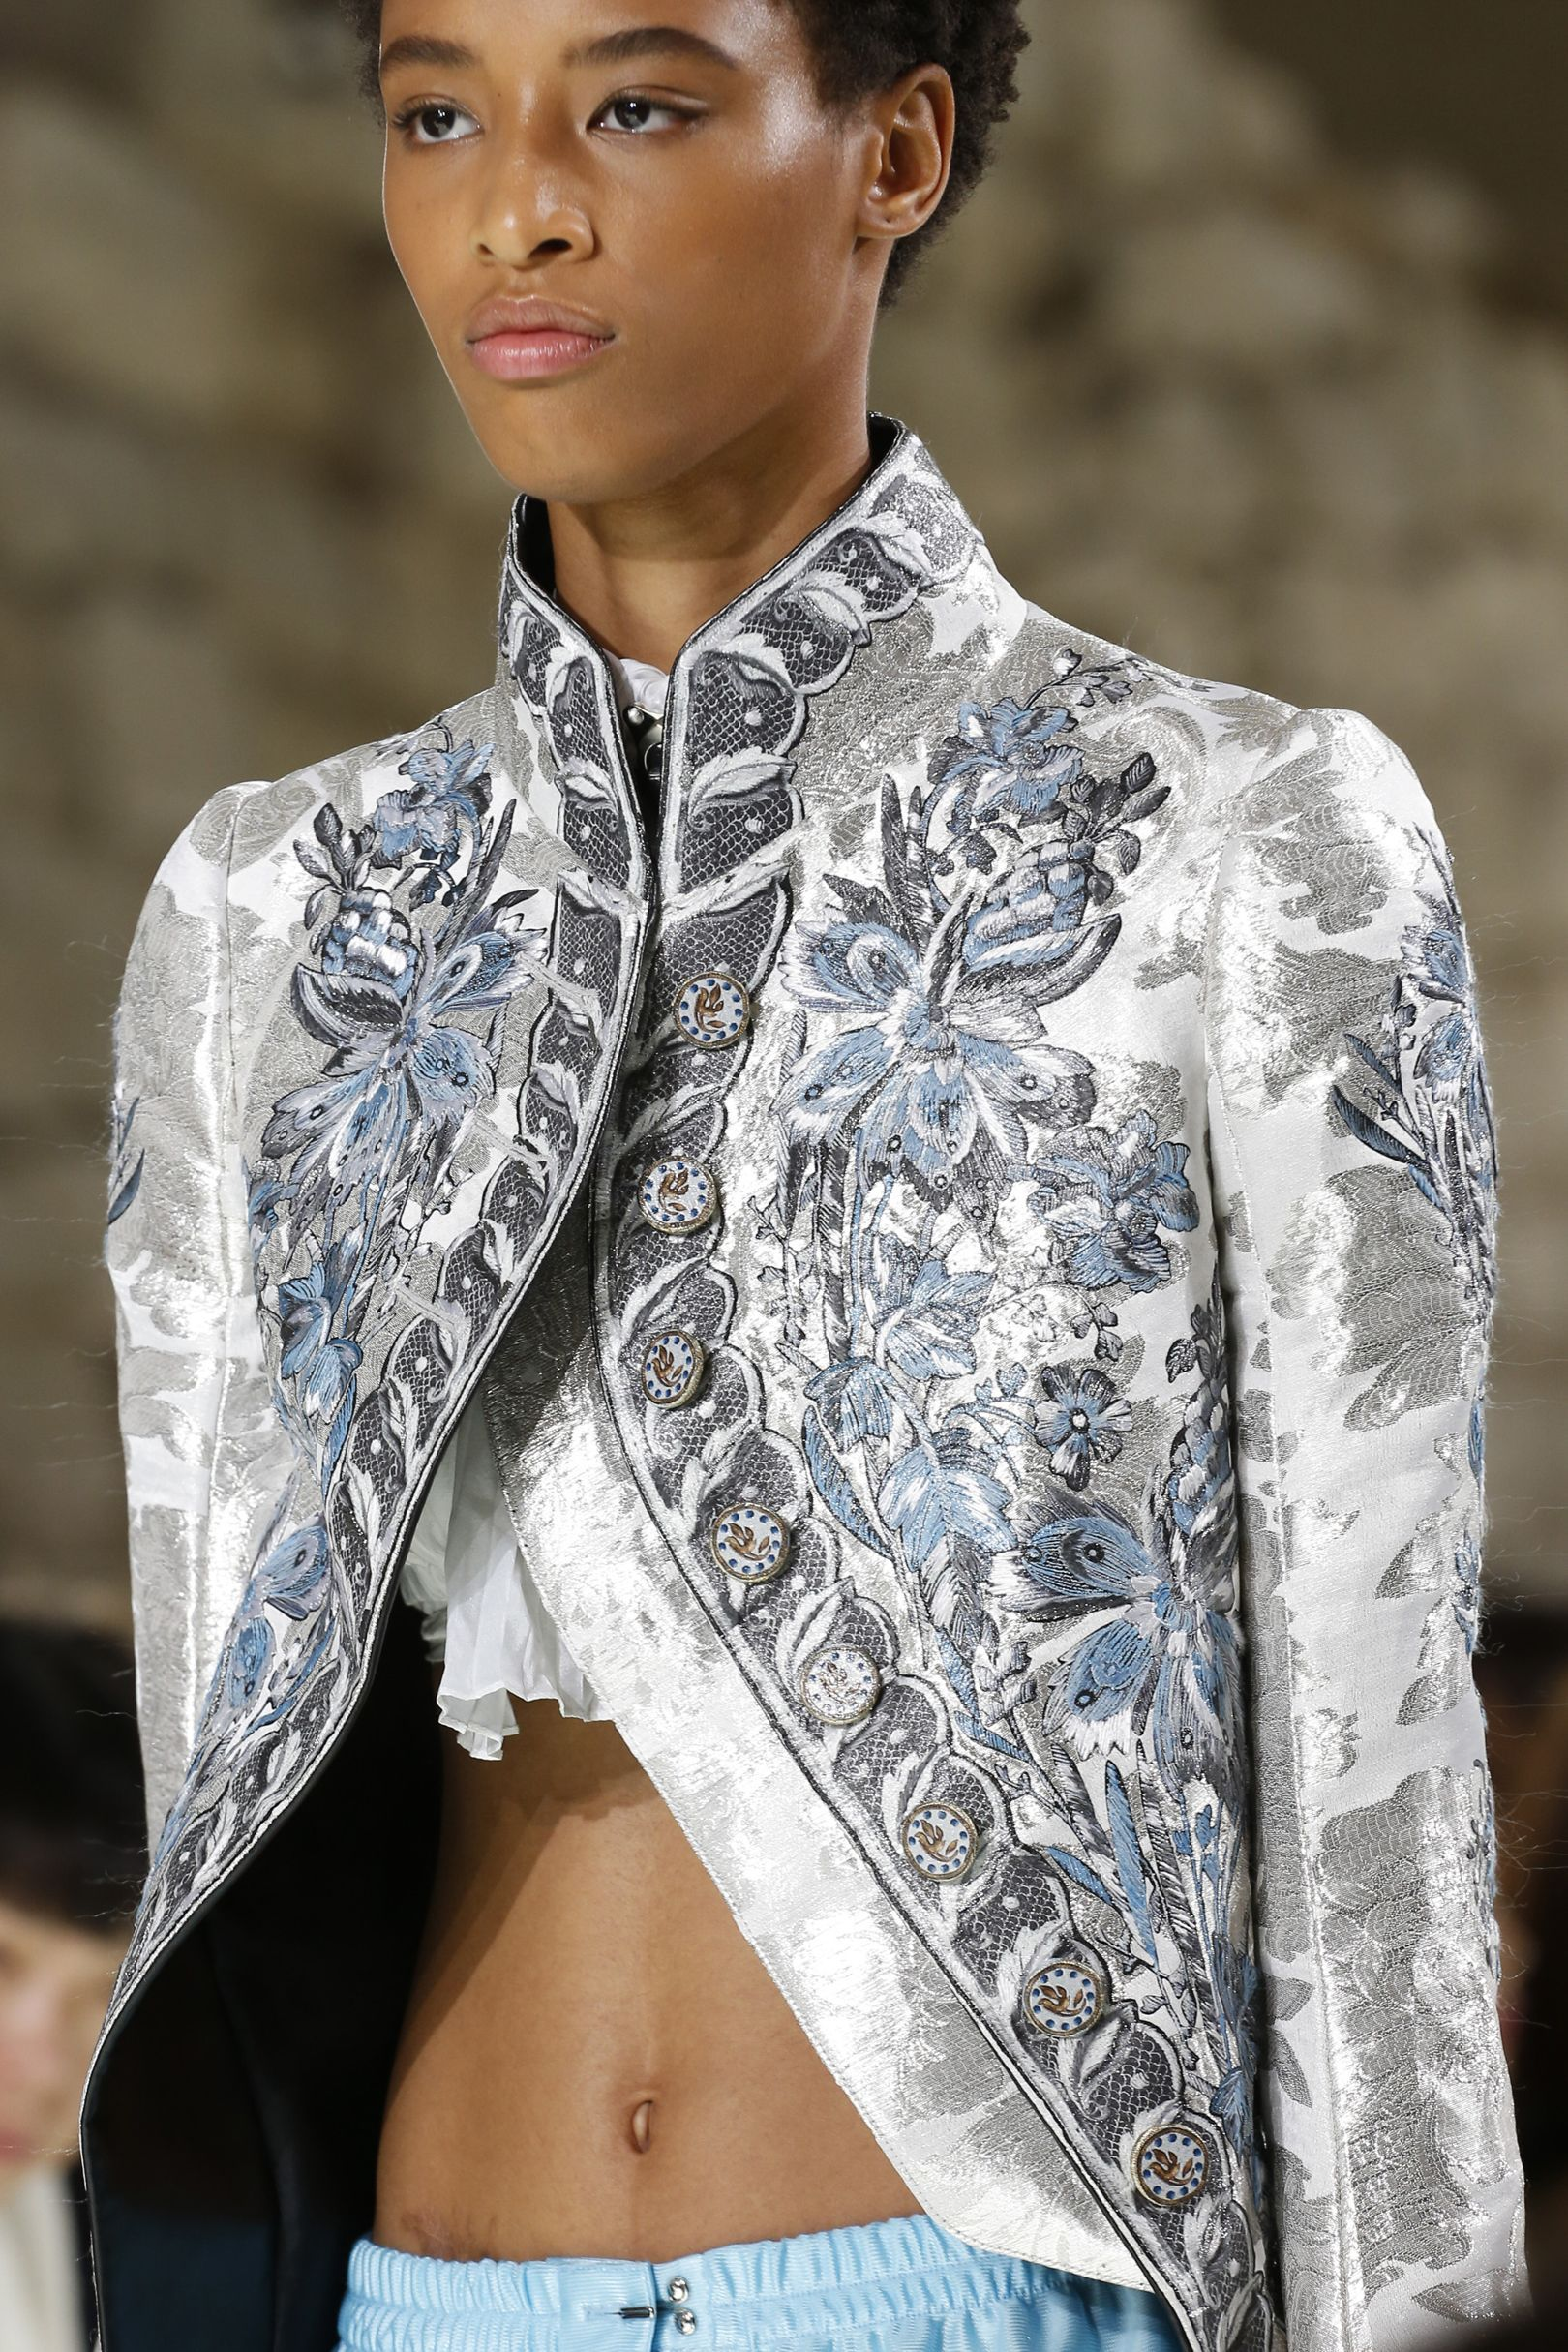 67c776ec33a8 Louis Vuitton silver and blue frock coat from their SS18 Collection   investmentpiece.